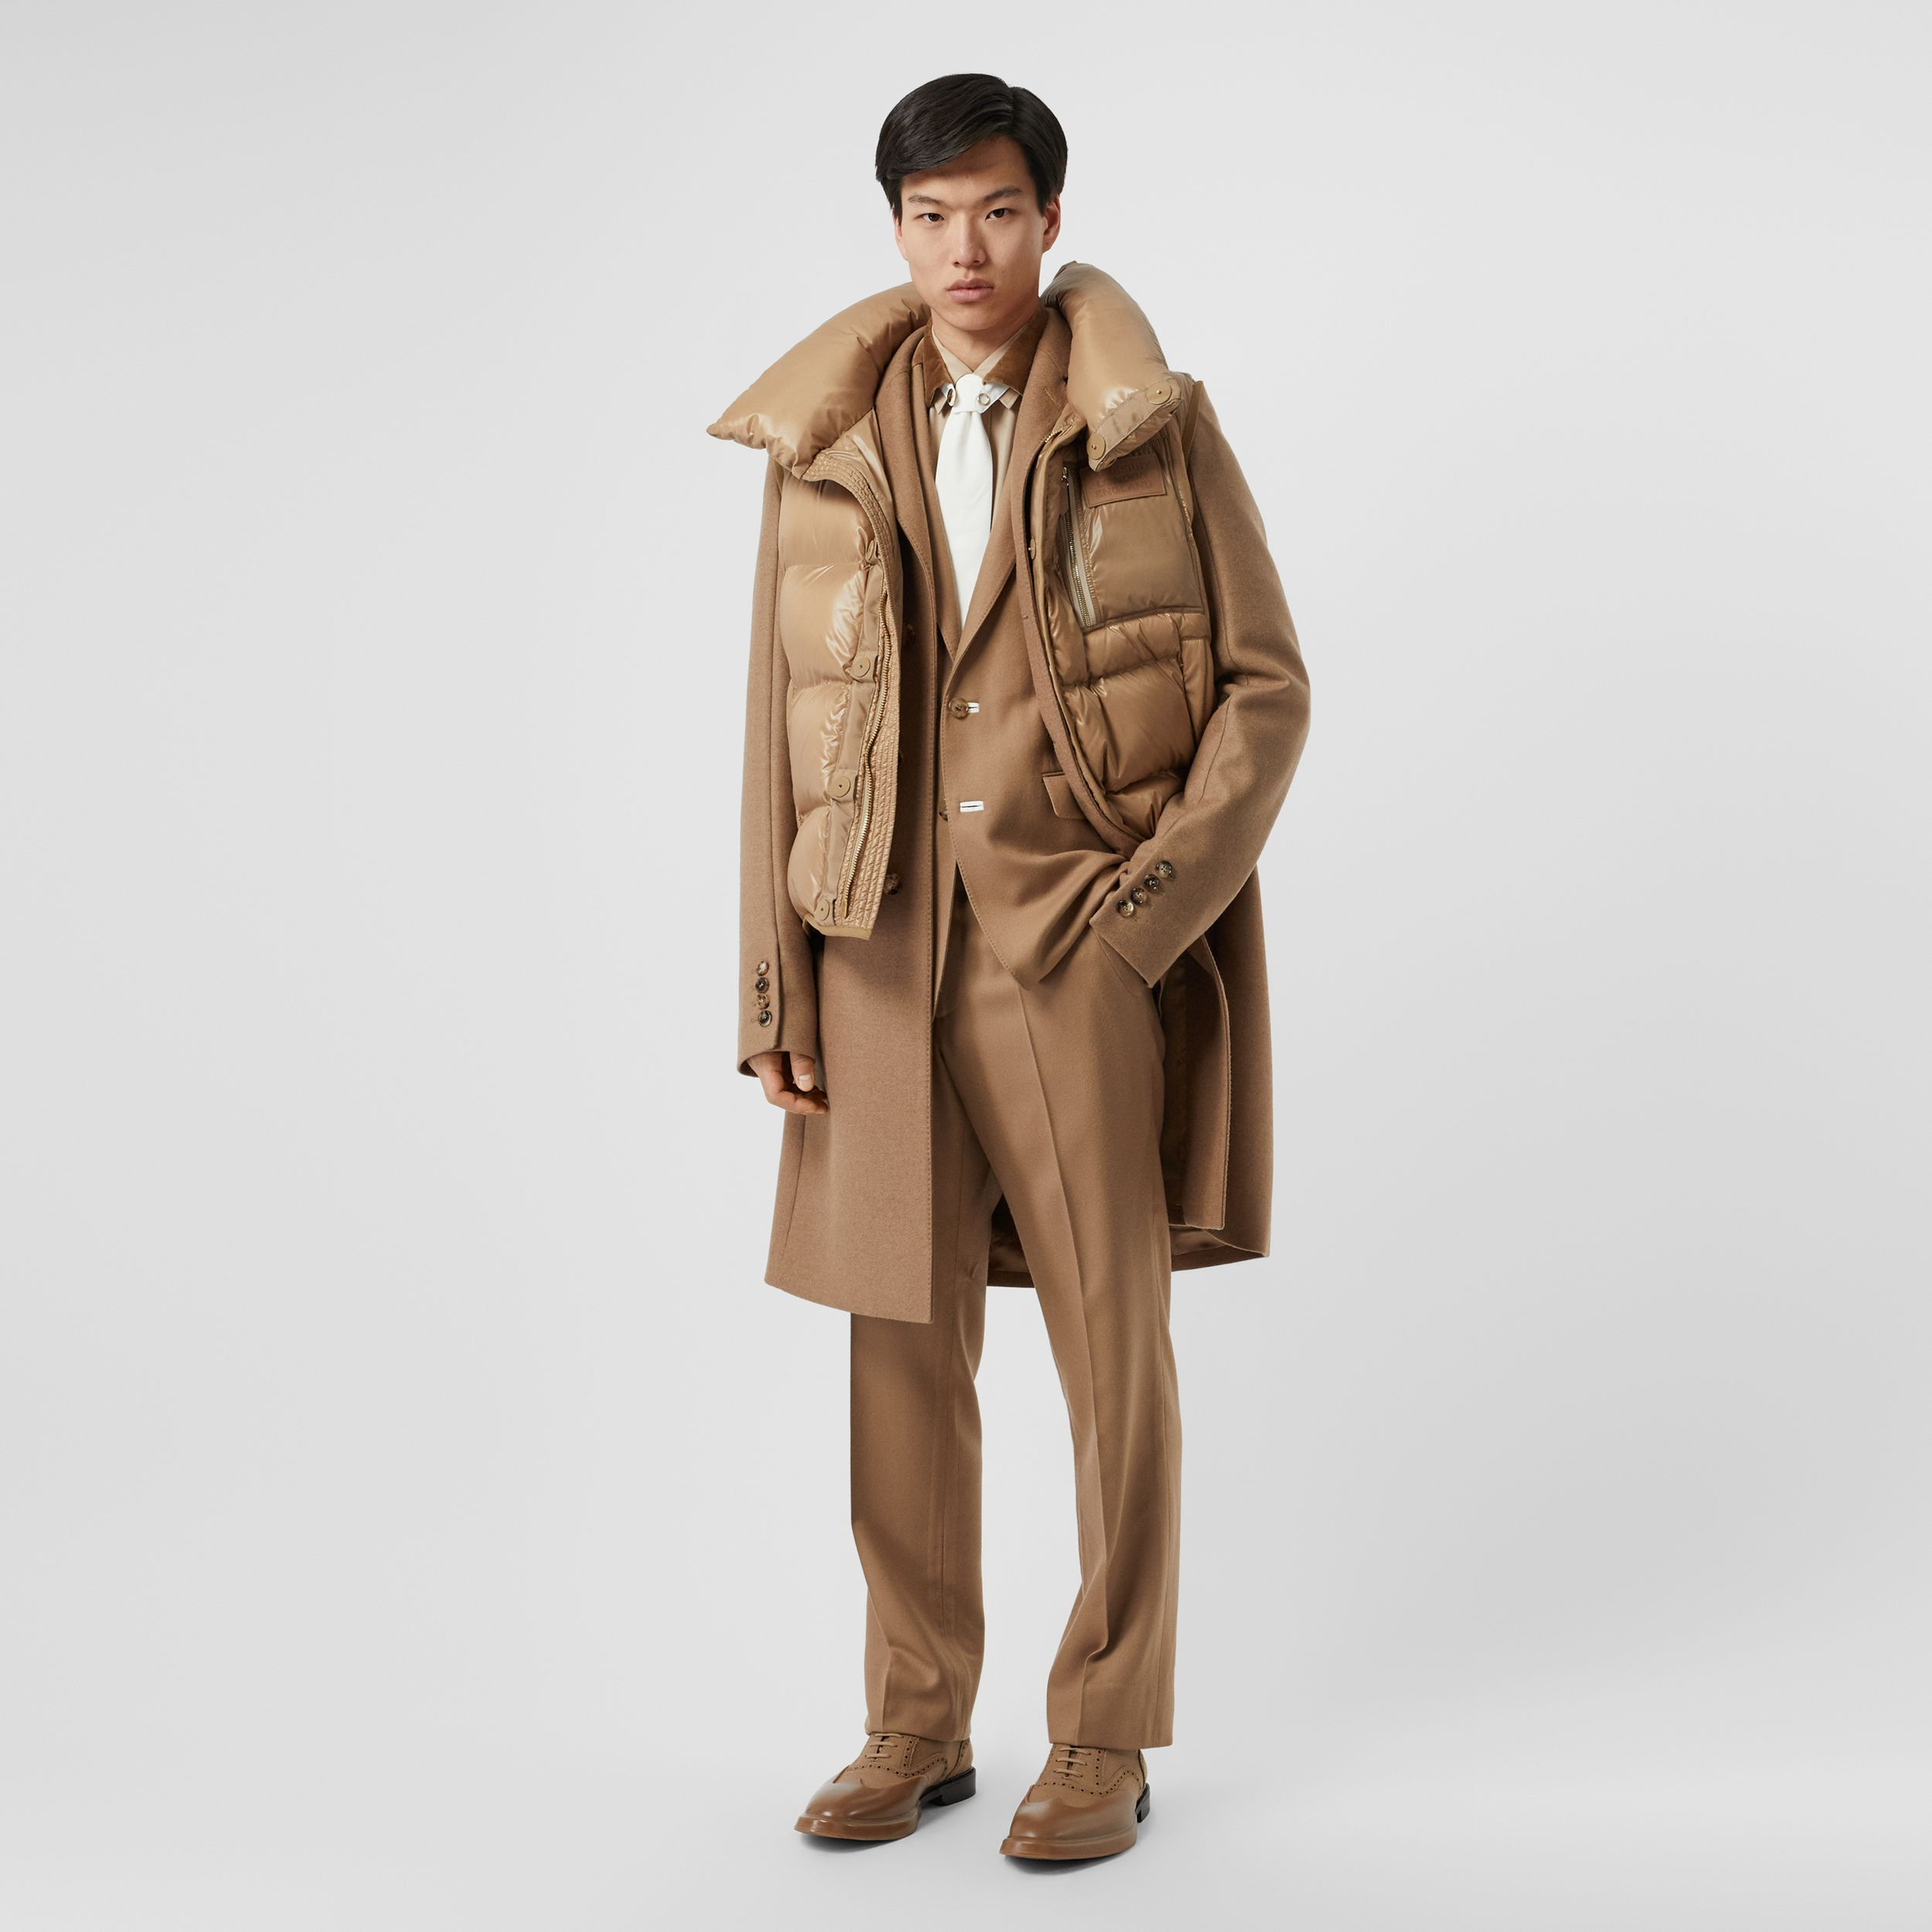 English Fit Velvet Collar Wool Flannel Tailored Jacket in Warm Camel - Men | Burberry - 1